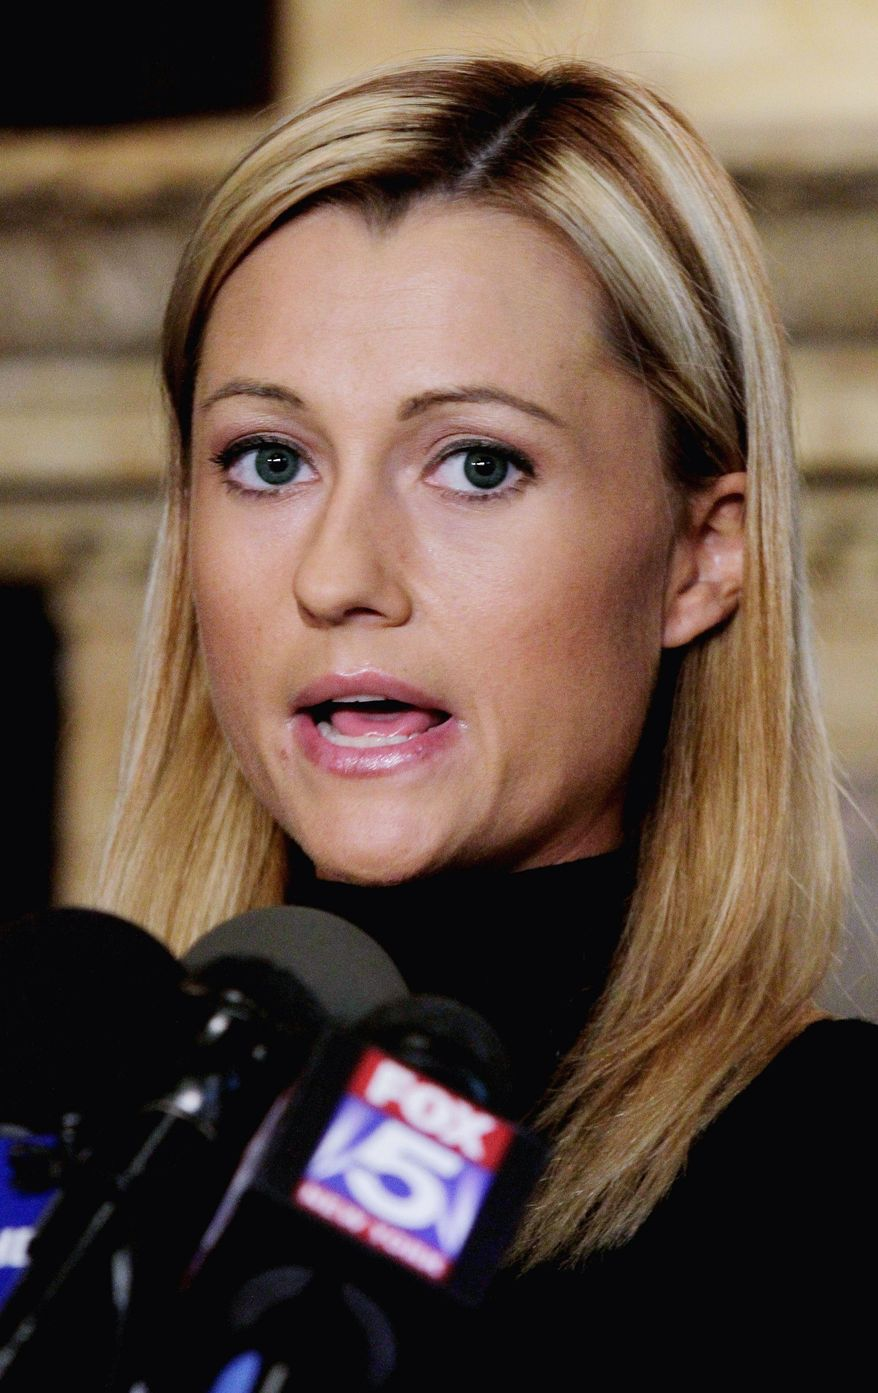 ASSOCIATED PRESS Former porn actress Ginger Lee reads her prepared statement a news conference at the Friars Club, in New York, Wednesday, June 15, 2011. Lee, who said she exchanged emails and messages over Twitter with New York Rep. Anthony Weiner, said Wednesday that he asked her to lie about their online communications. (AP Photo/Richard Drew)